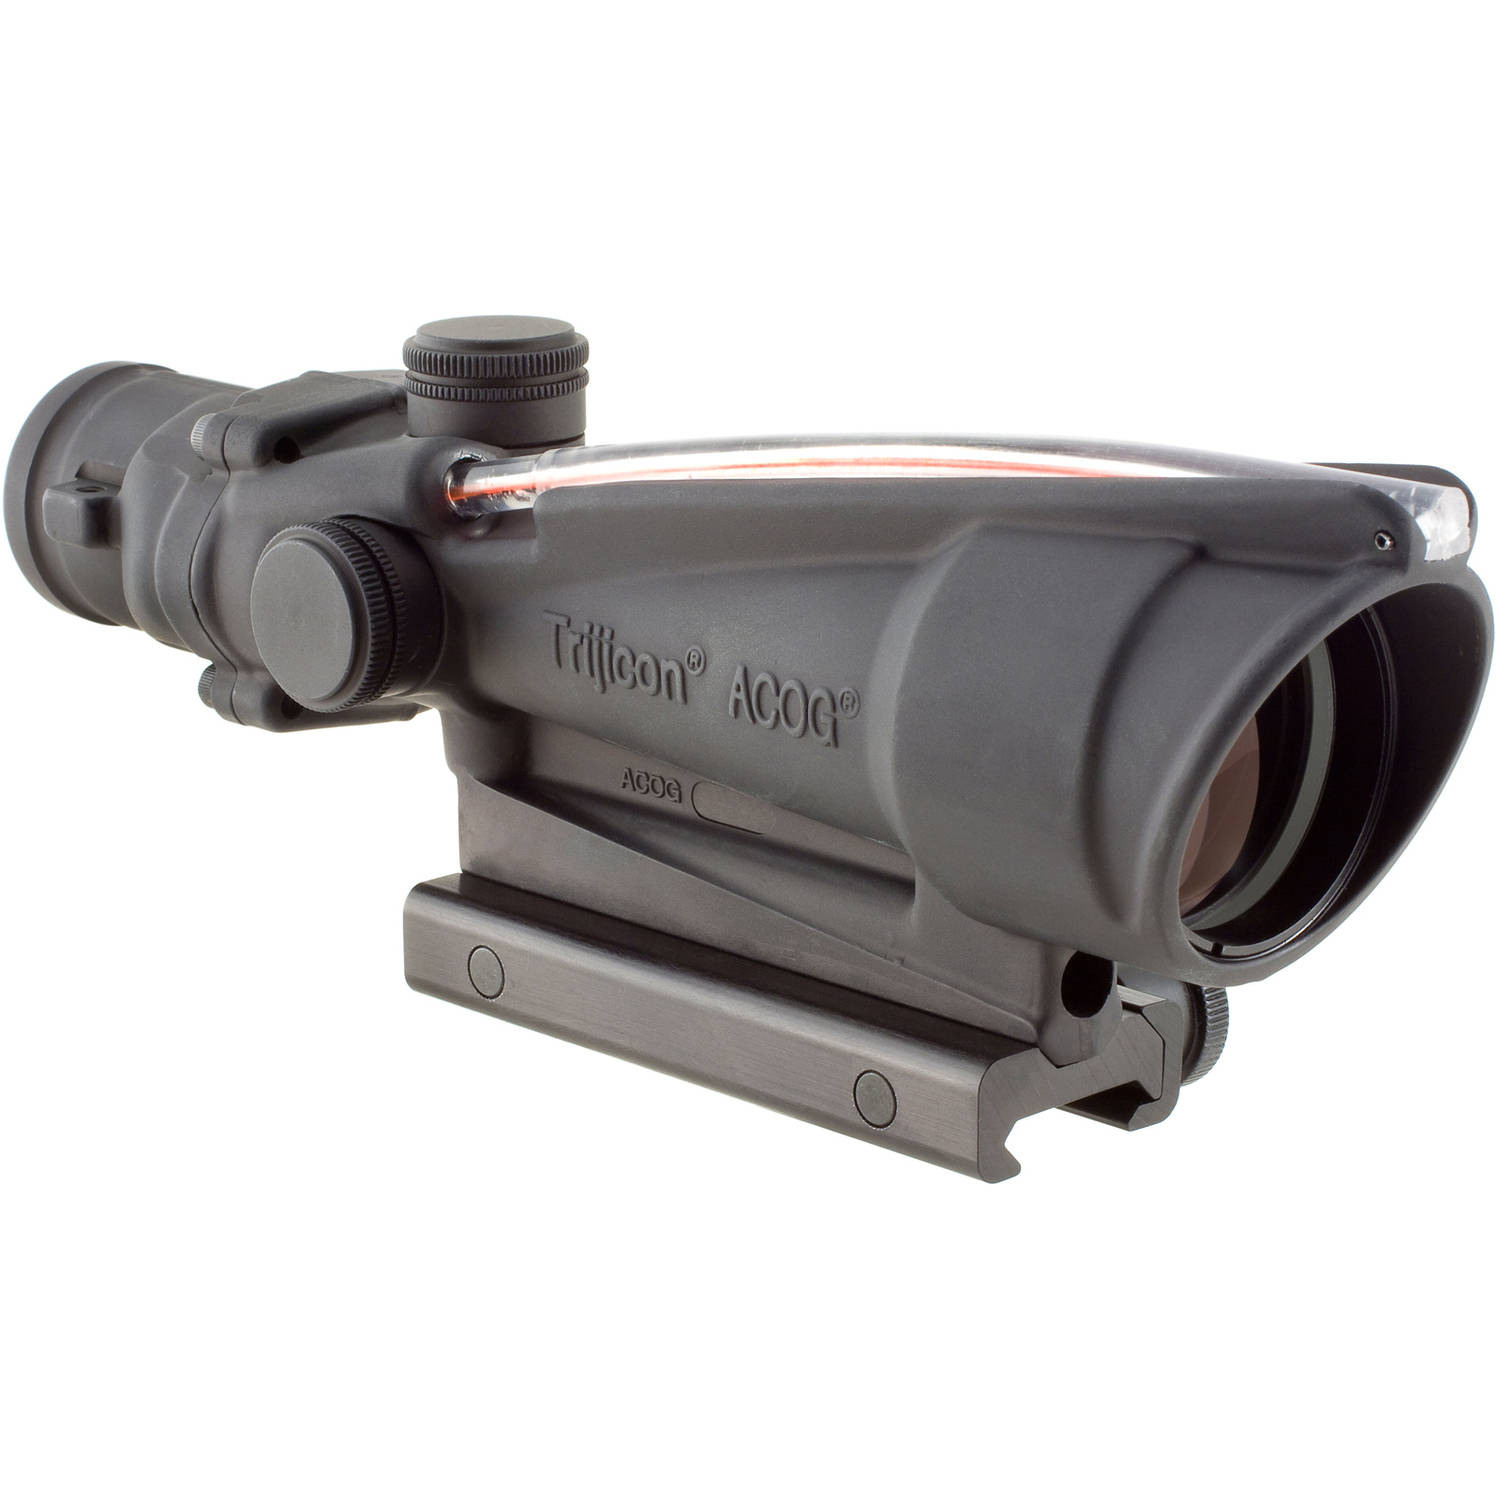 Trijicon ACOG Rifle Scope, 3.5X35, Red Horseshoe Reticle .308, TA51 Mount, Matte by Trijicon